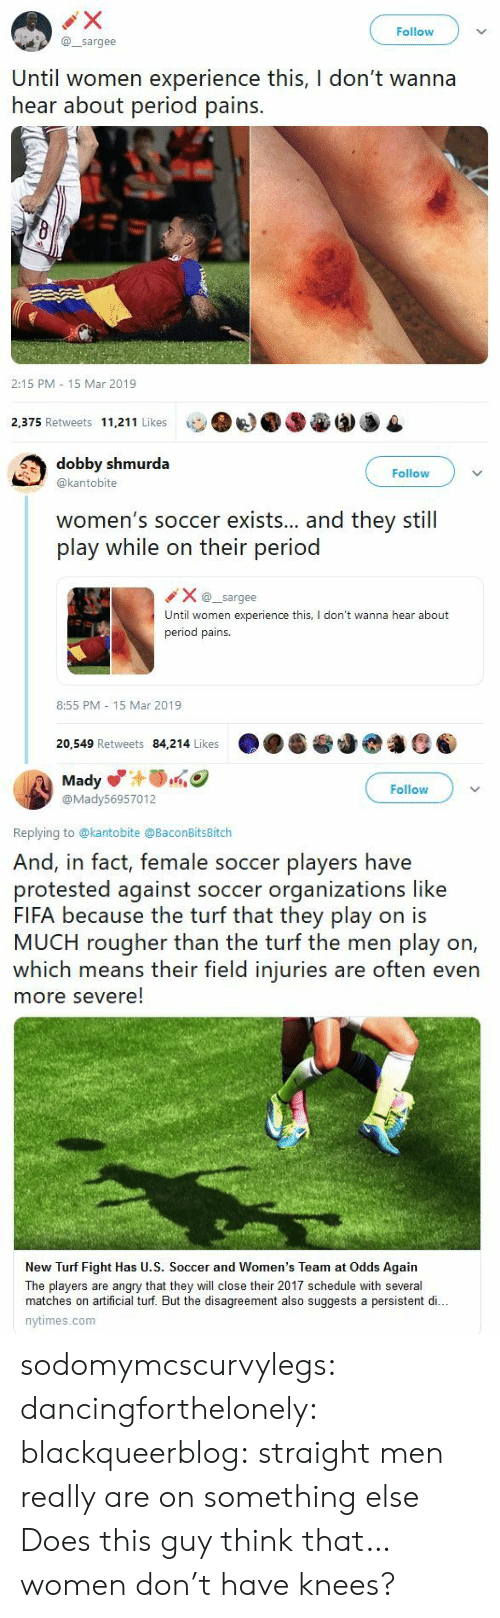 Nytimes: Follow  @sargee  Until women experience this, I don't wanna  hear about period pains.  2:15 PM 15 Mar 2019  2,375 Retweets 11,211 Likes   dobby shmurda  @kantobite  Follow  women's soccer exists... and they still  play while on their period  Xsargee  Until women experience this, I don't wanna hear about  period pains.  8:55 PM 15 Mar 2019  20,549 Retweets 84,214 Likes   Mady  @Mady56957012  Follow  Replying to @kantobite @BaconBitsBitch  And, in fact, female soccer players have  protested against soccer organizations like  FIFA because the turf that they play on is  MUCH rougher than the turf the men play on,  which means their field injuries are often even  more severe!  New Turf Fight Has U.S. Soccer and Women's Team at Odds Again  The players are angry that they will close their 2017 schedule with several  matches on artificial turf. But the disagreement also suggests a persistent di..  nytimes.com sodomymcscurvylegs:  dancingforthelonely:  blackqueerblog:   straight men really are on something else    Does this guy think that…women don't have knees?